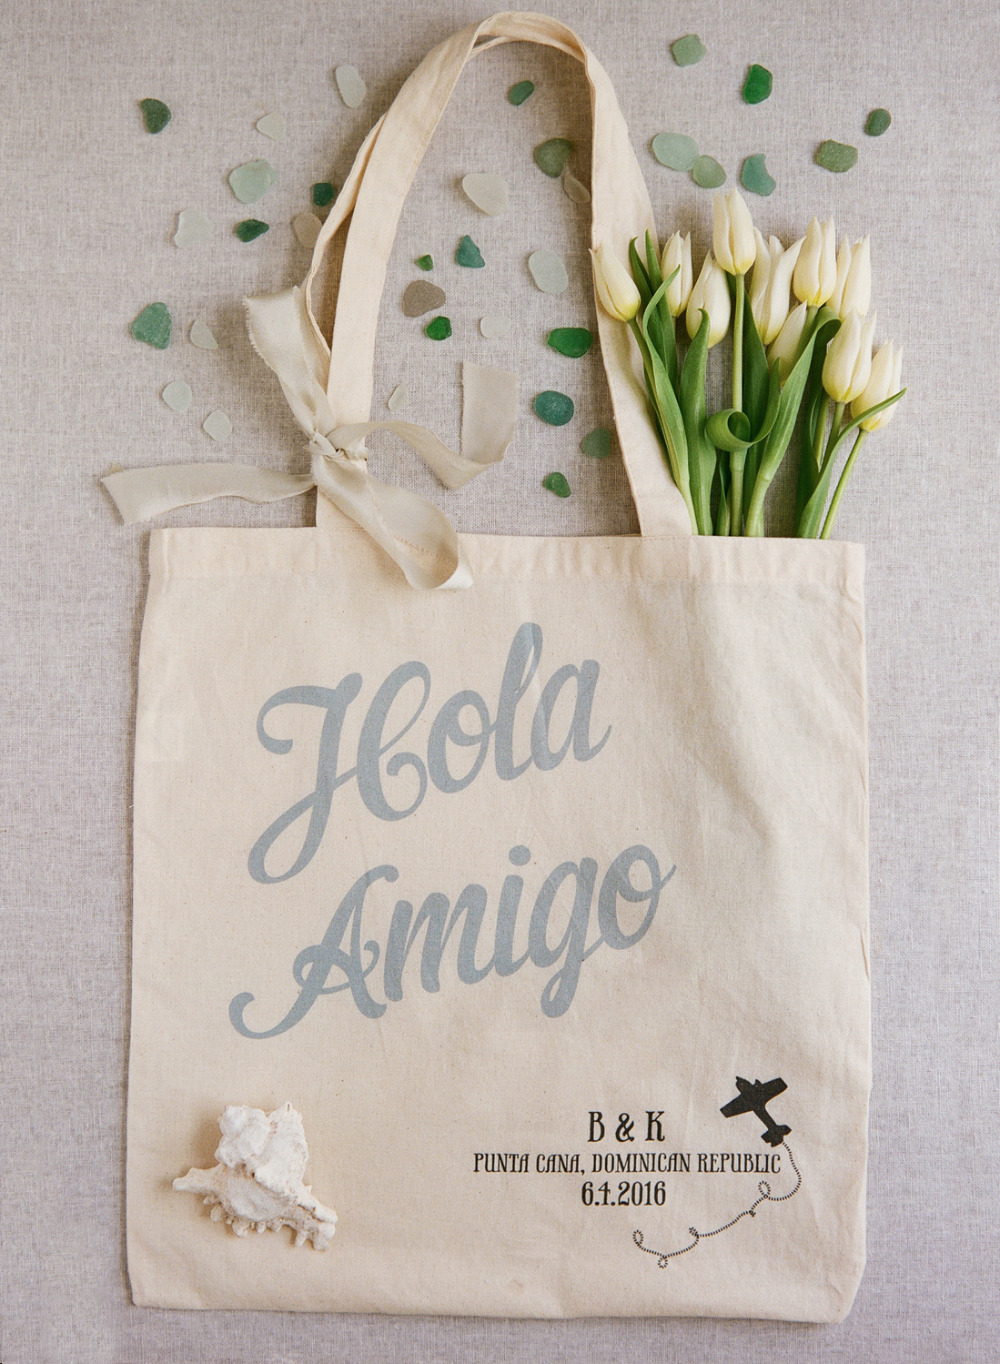 Hola Amigo Wedding Chicks tote